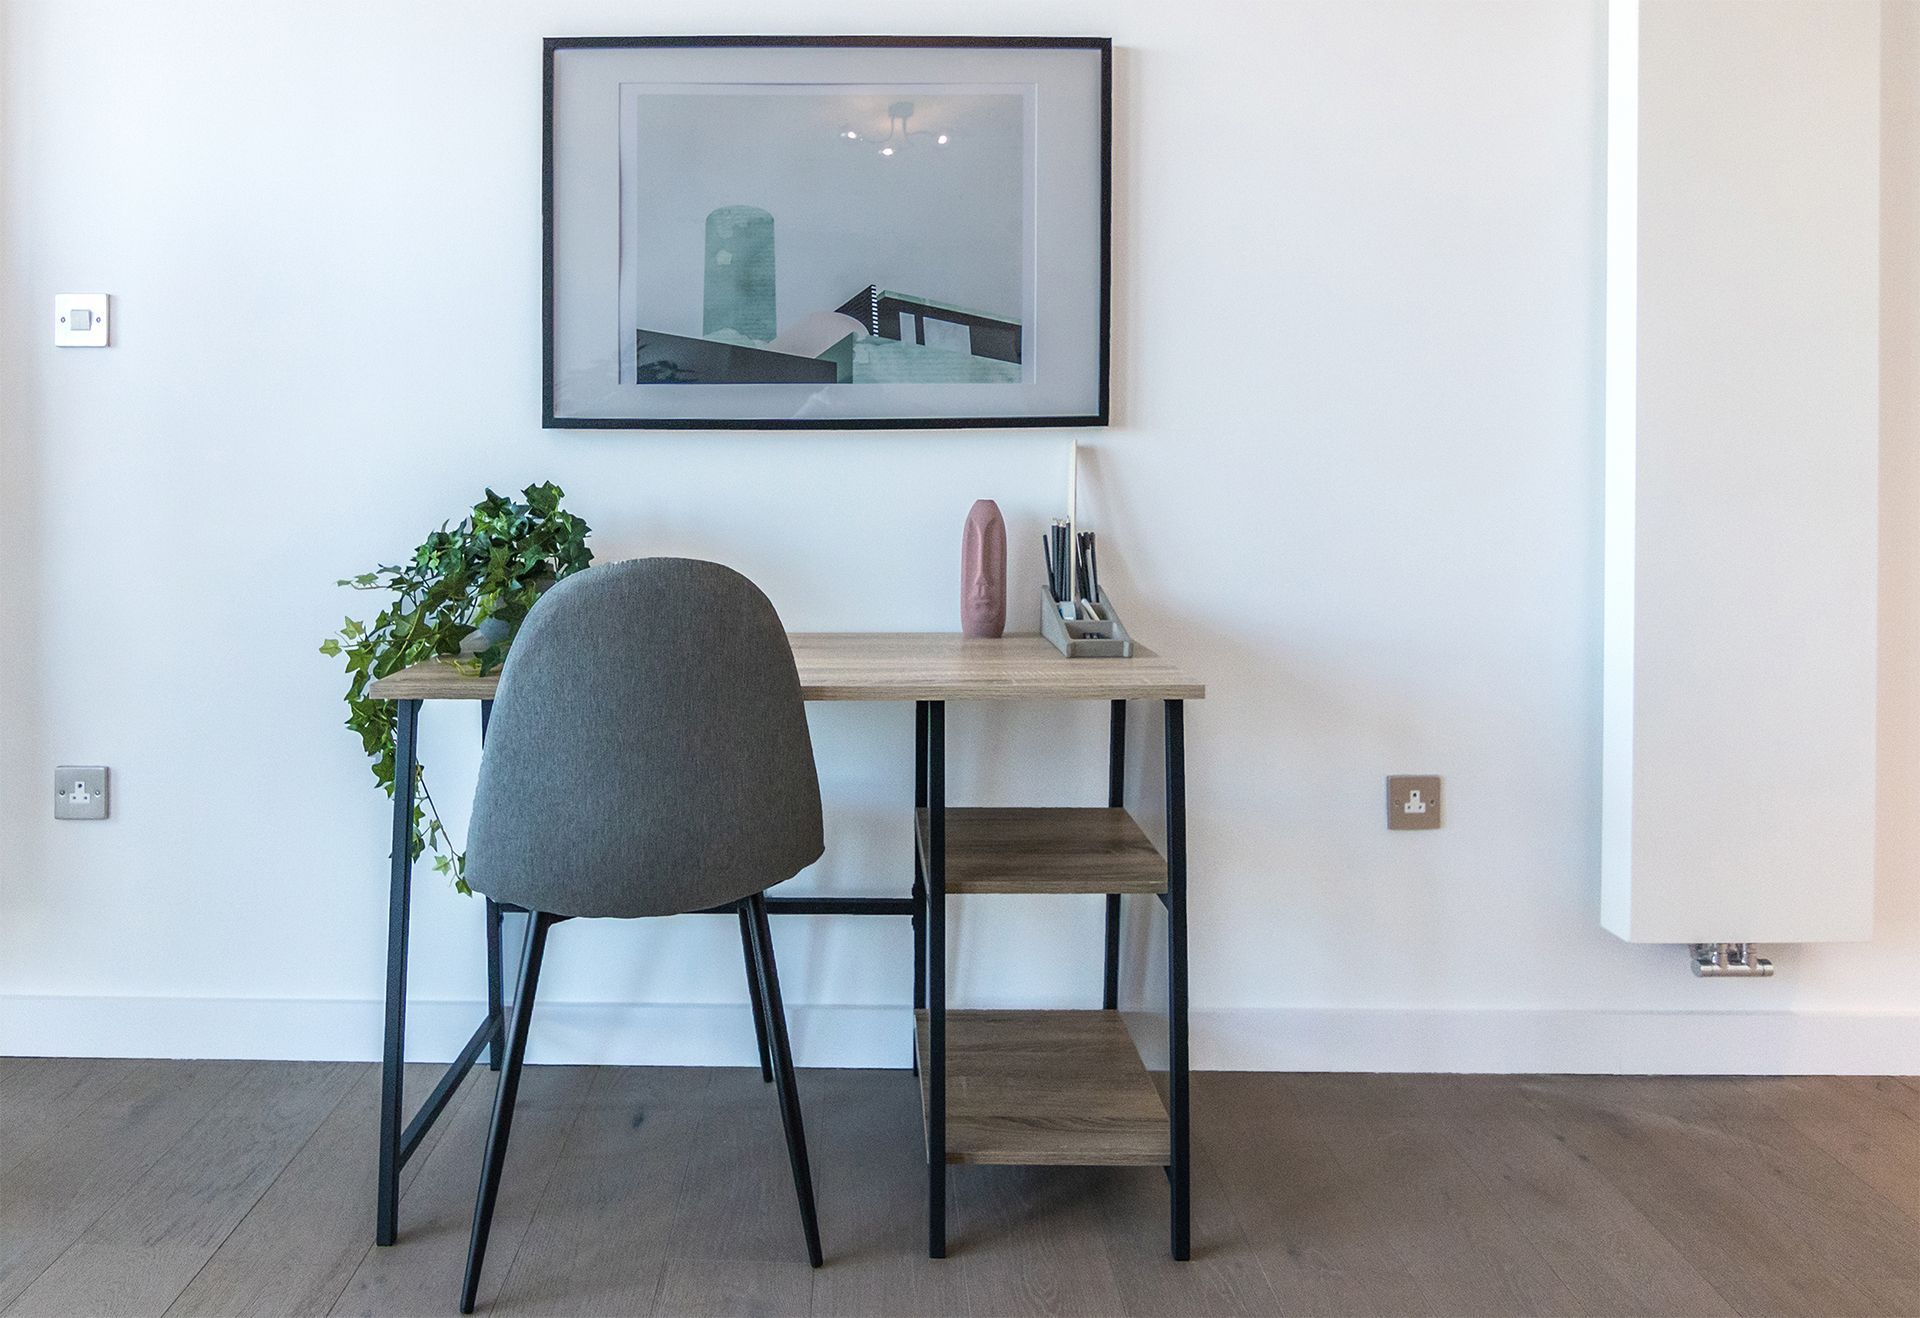 1 Bedroom apartment to rent in London HIL-HH-0306